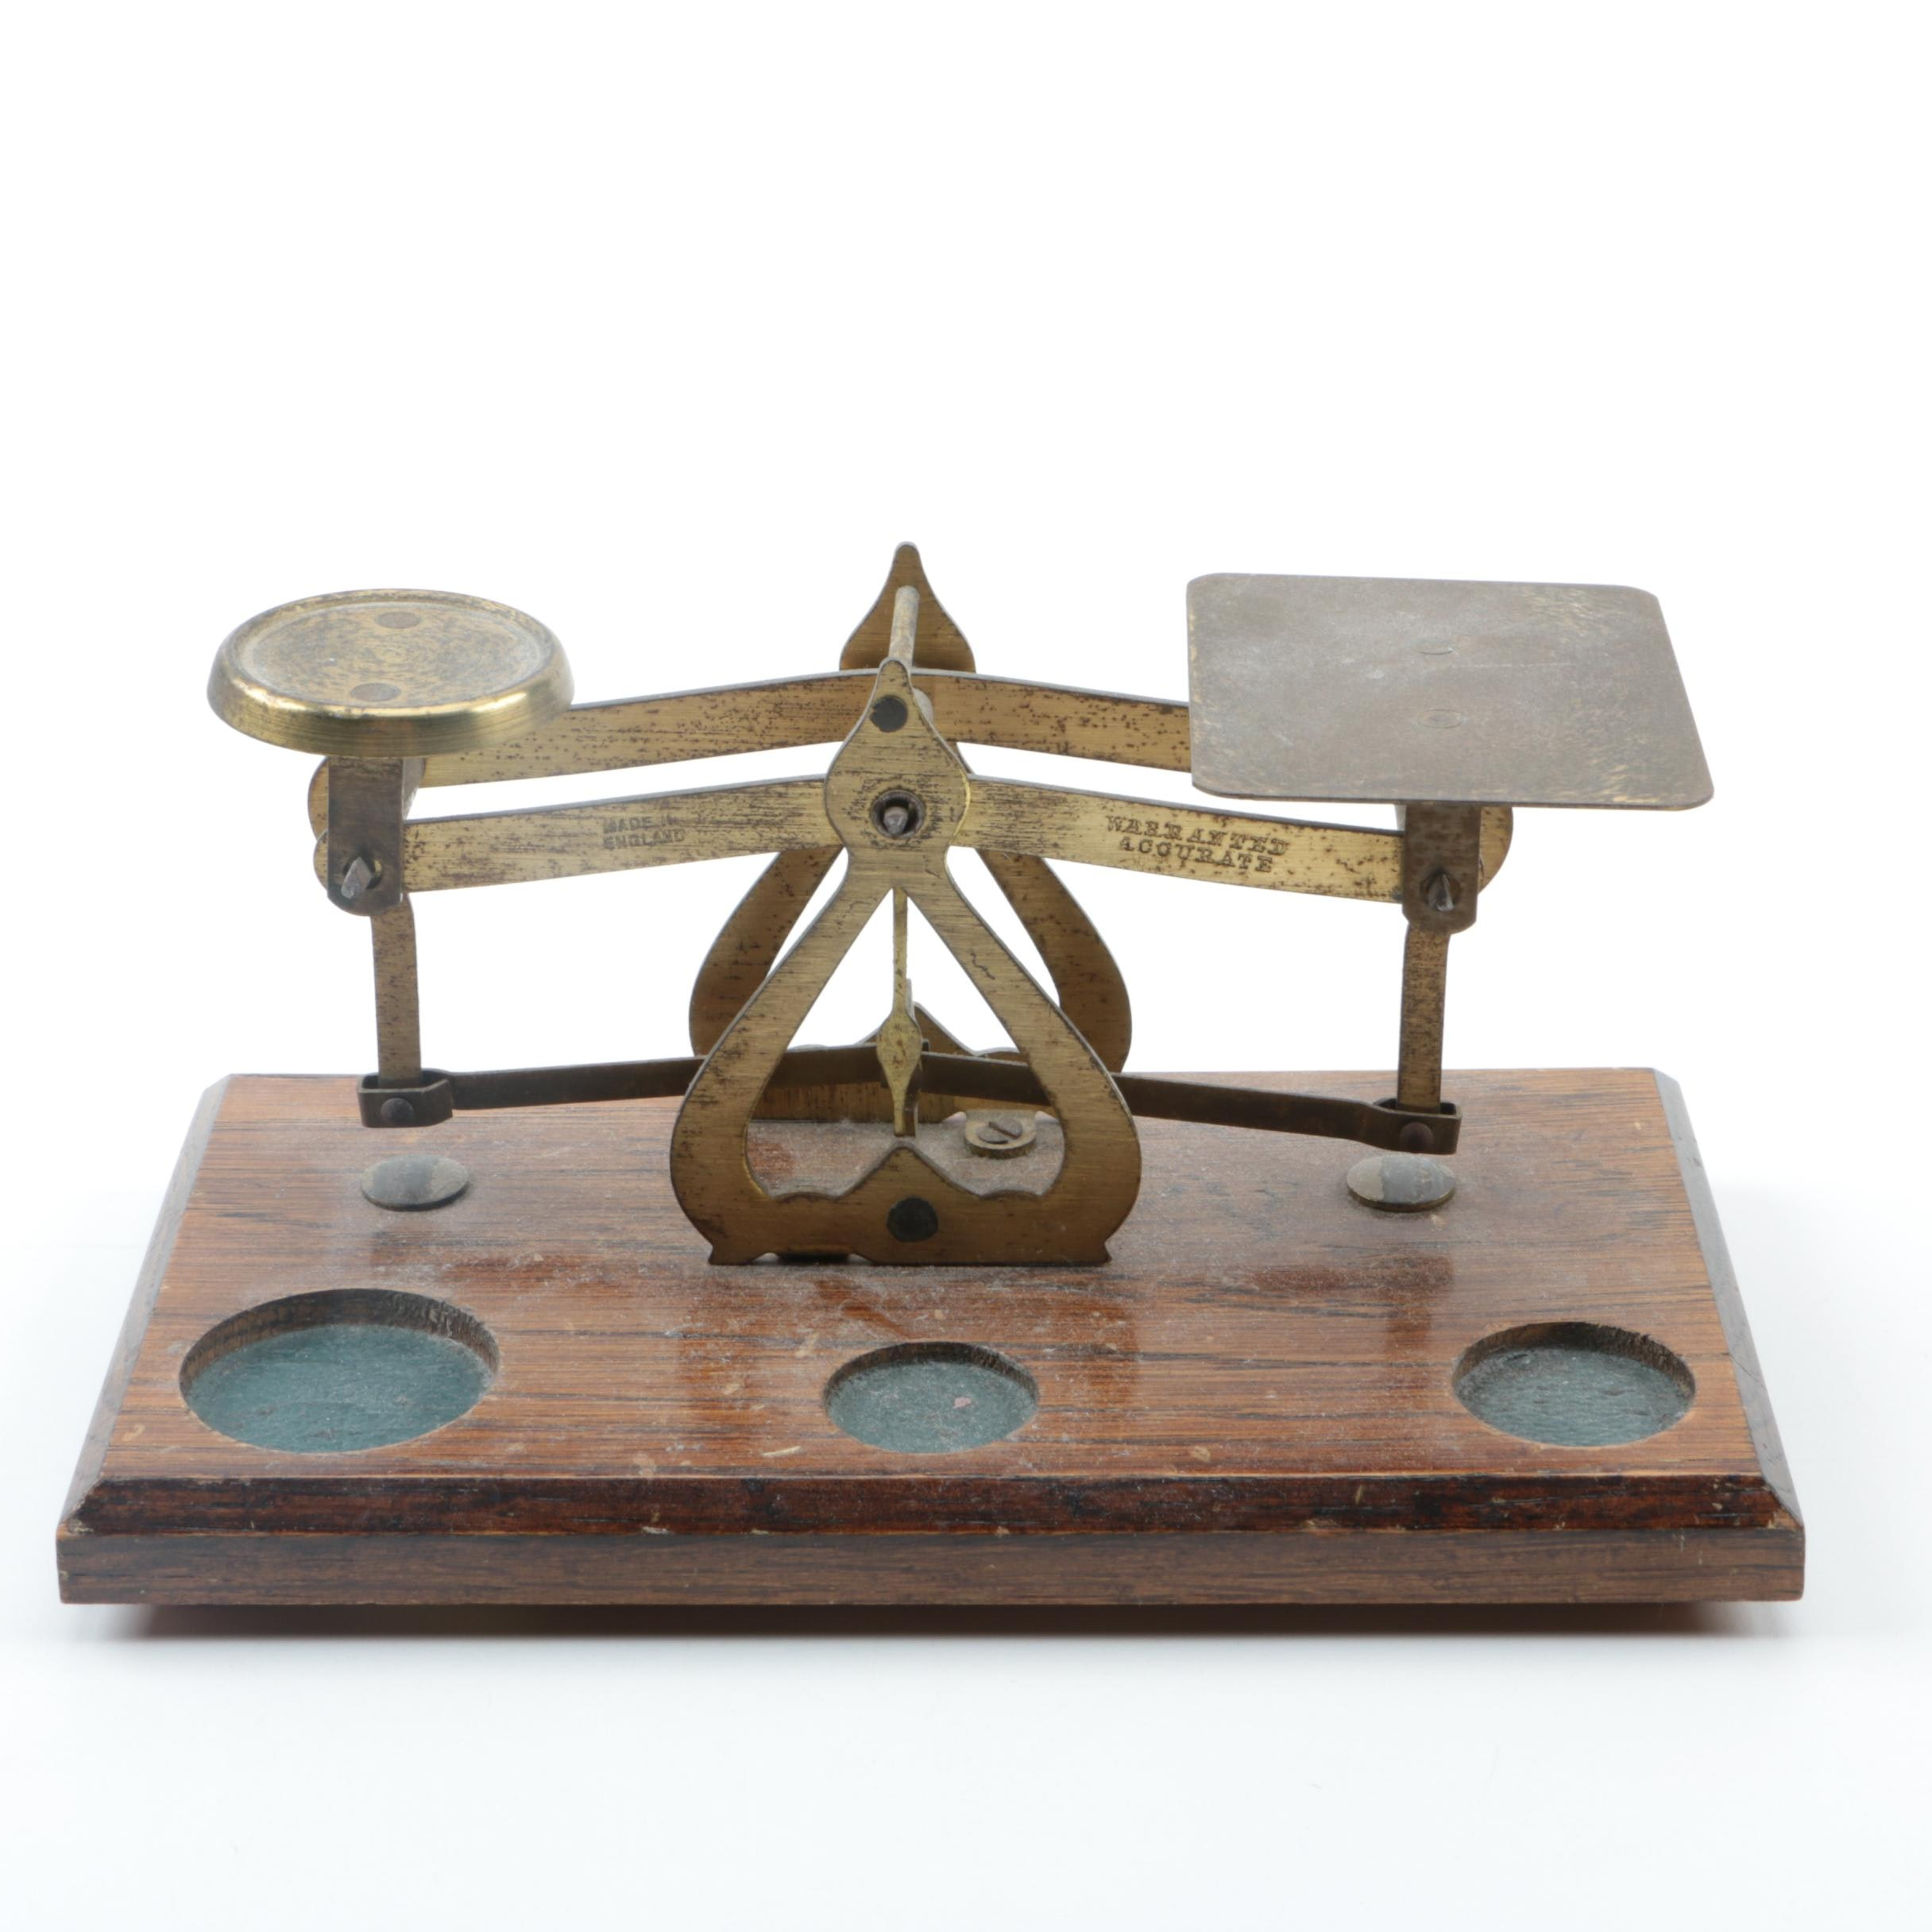 Brass Equal Arm Balance Scale on Wooden Base